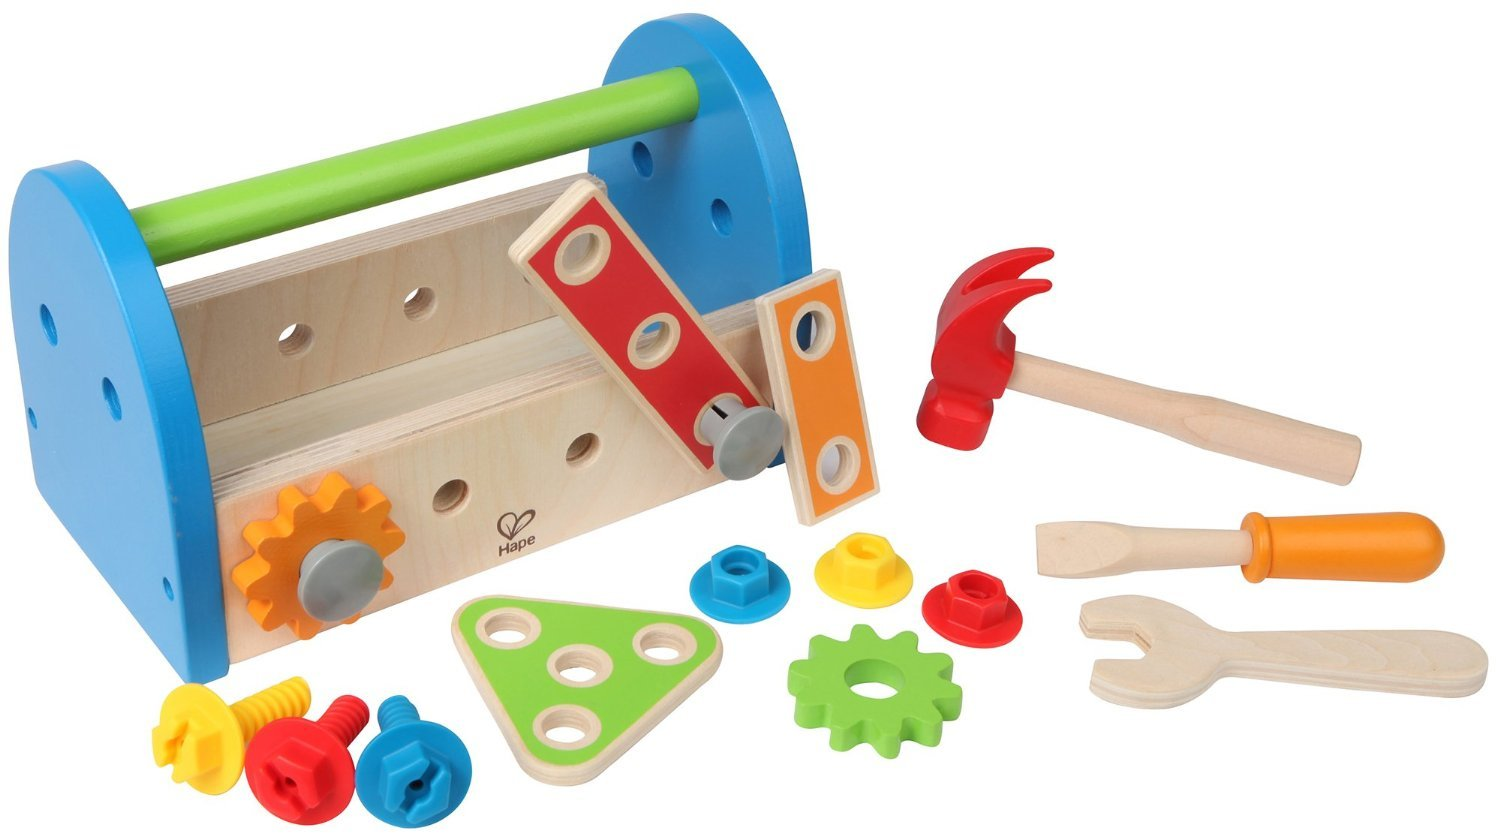 TODDLER GIFT GUIDE: 15 OPEN ENDED TOYS TODDLERS LOVE